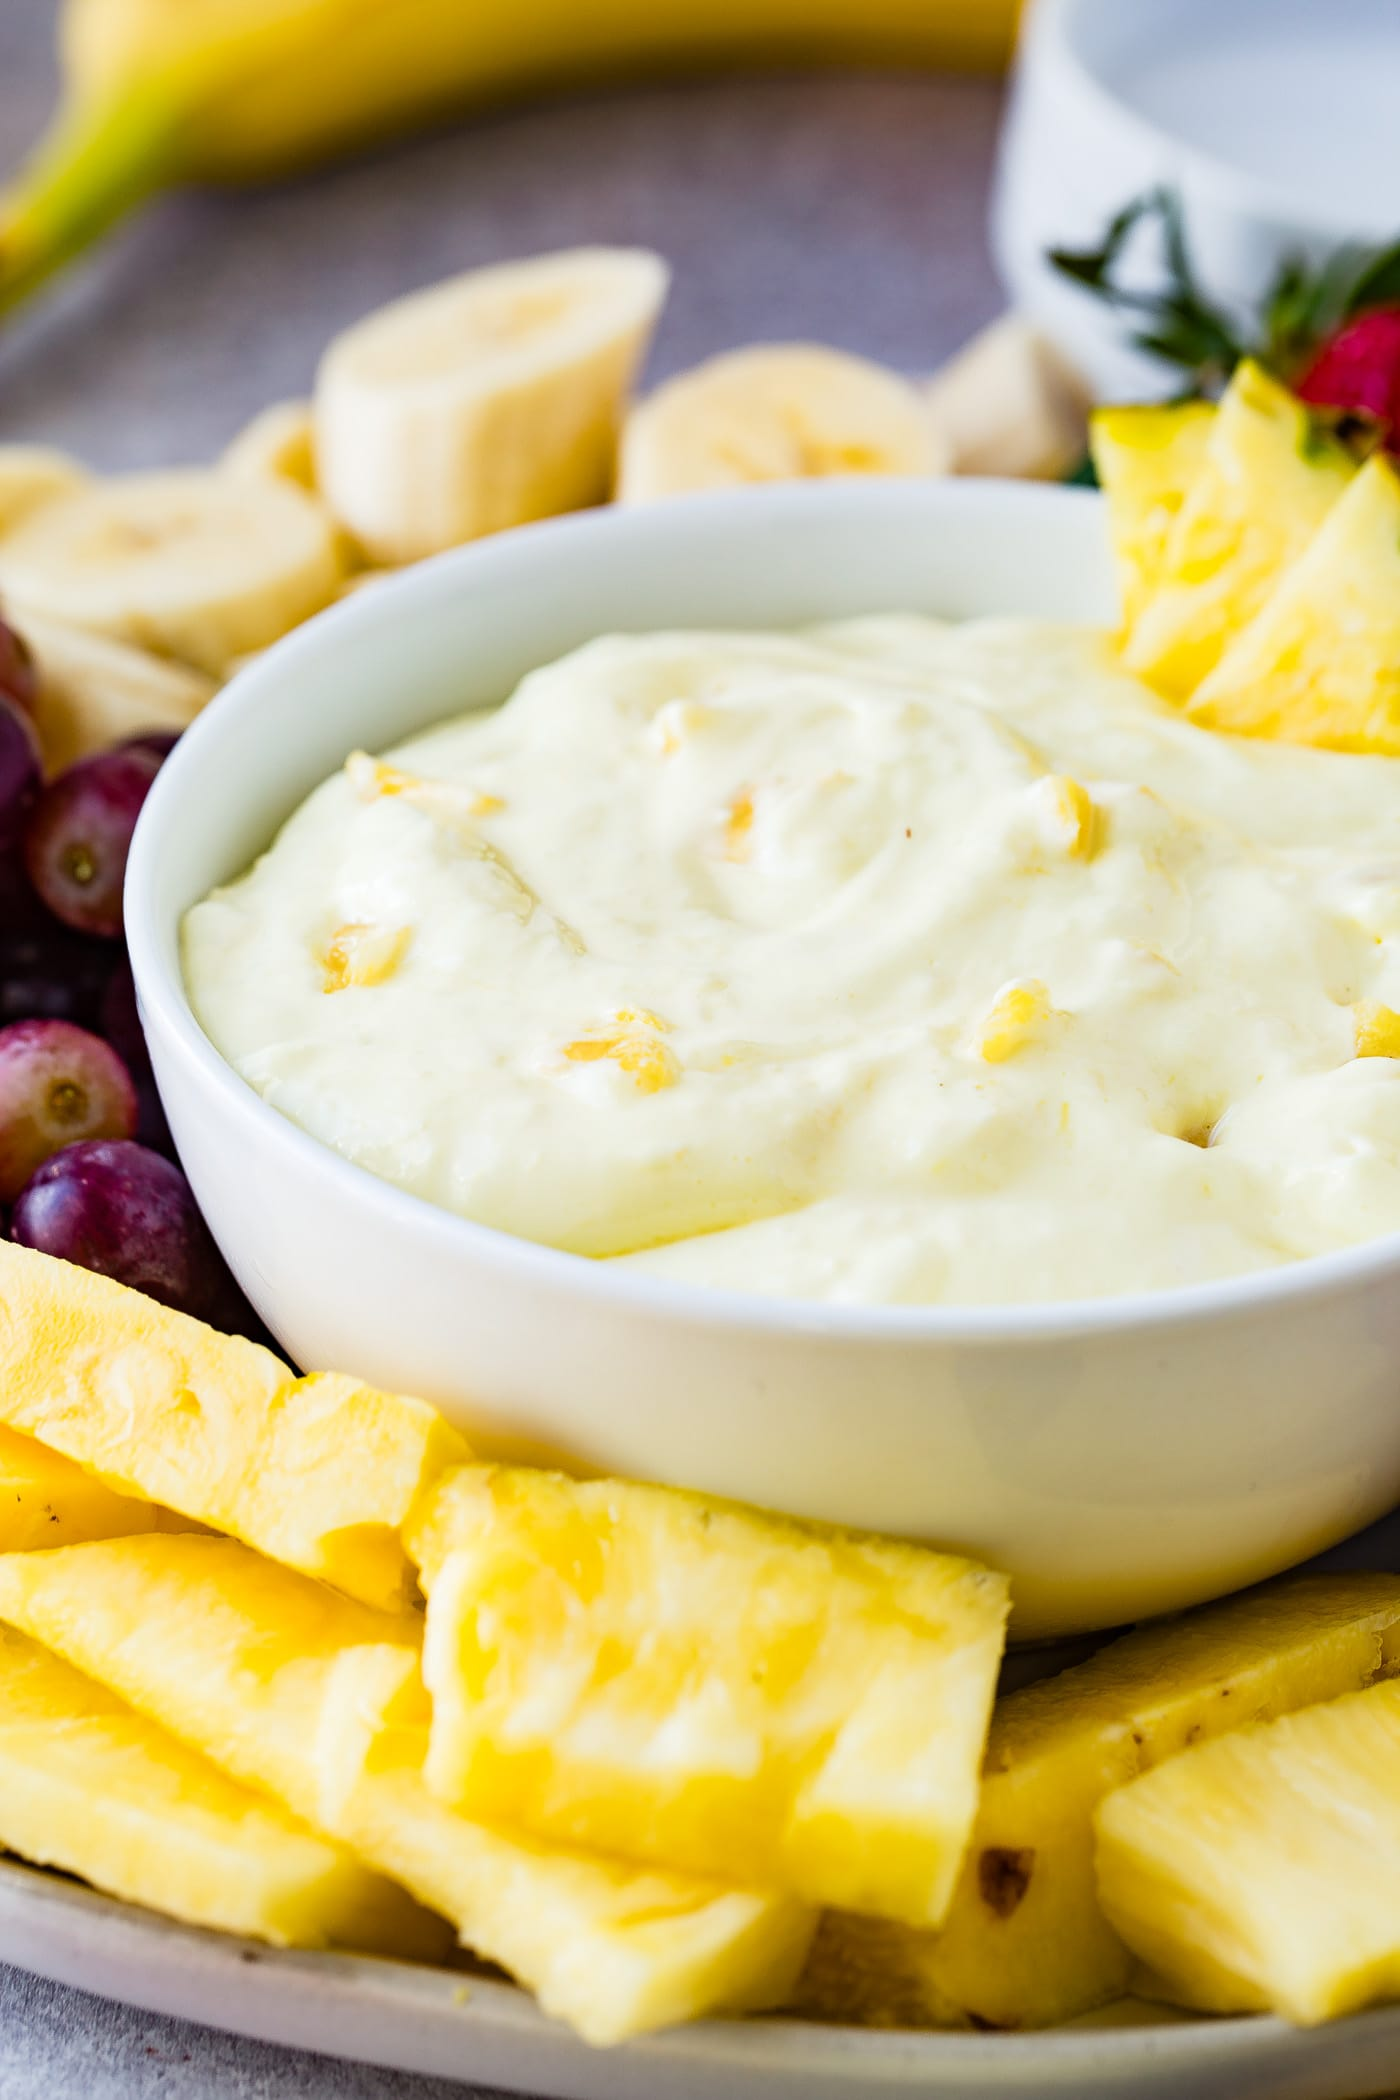 A bowl of pineapple fruit dip with three pineapple chunks on the edge of the bowl and tiny pieces of pineapple in the dip. The bowl is surrounded by sliced bananas, red grapes, pineapple chunks and whole strawberries.